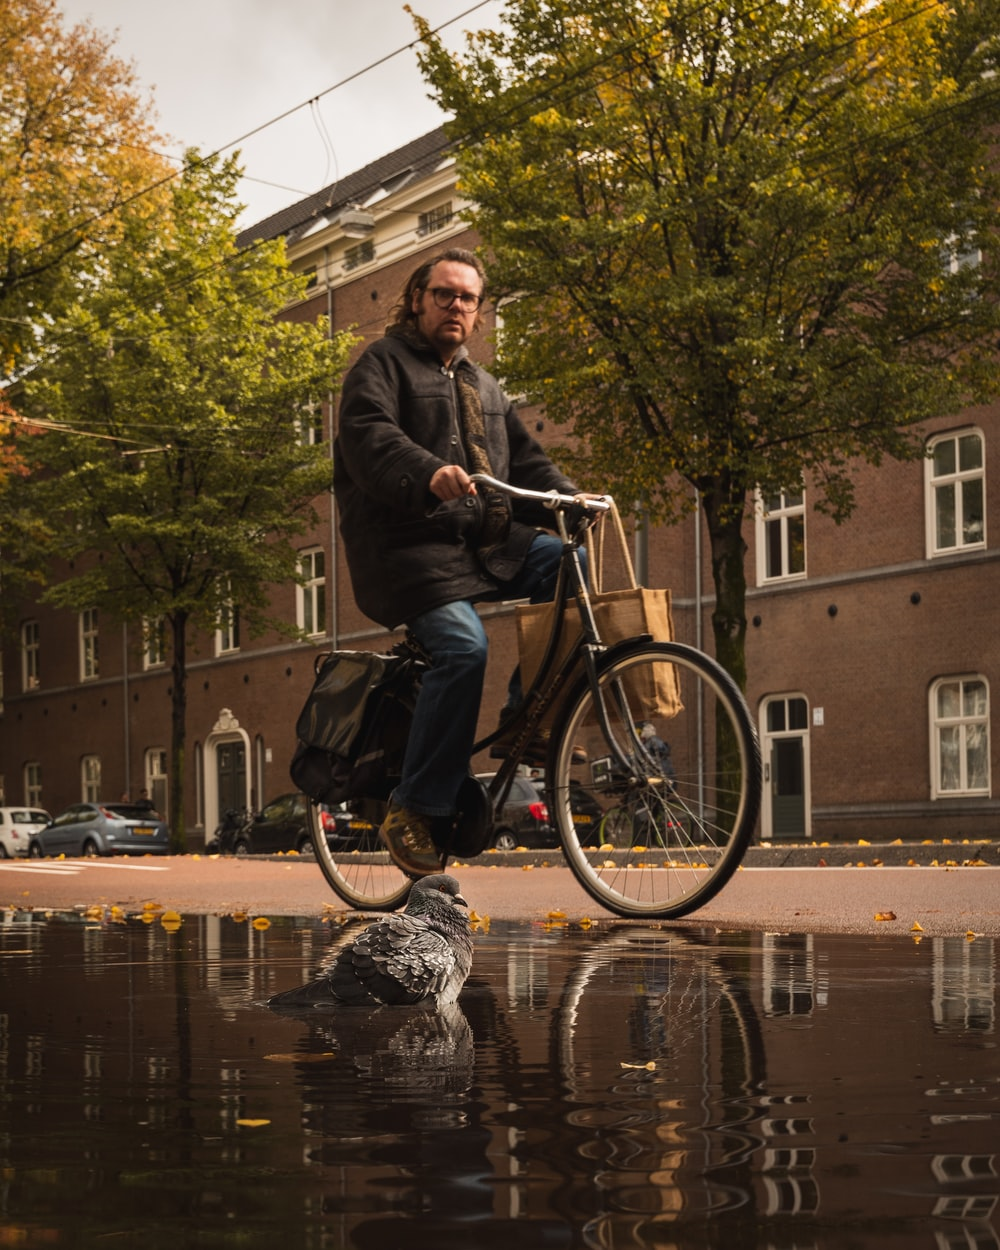 man in black jacket riding on bicycle